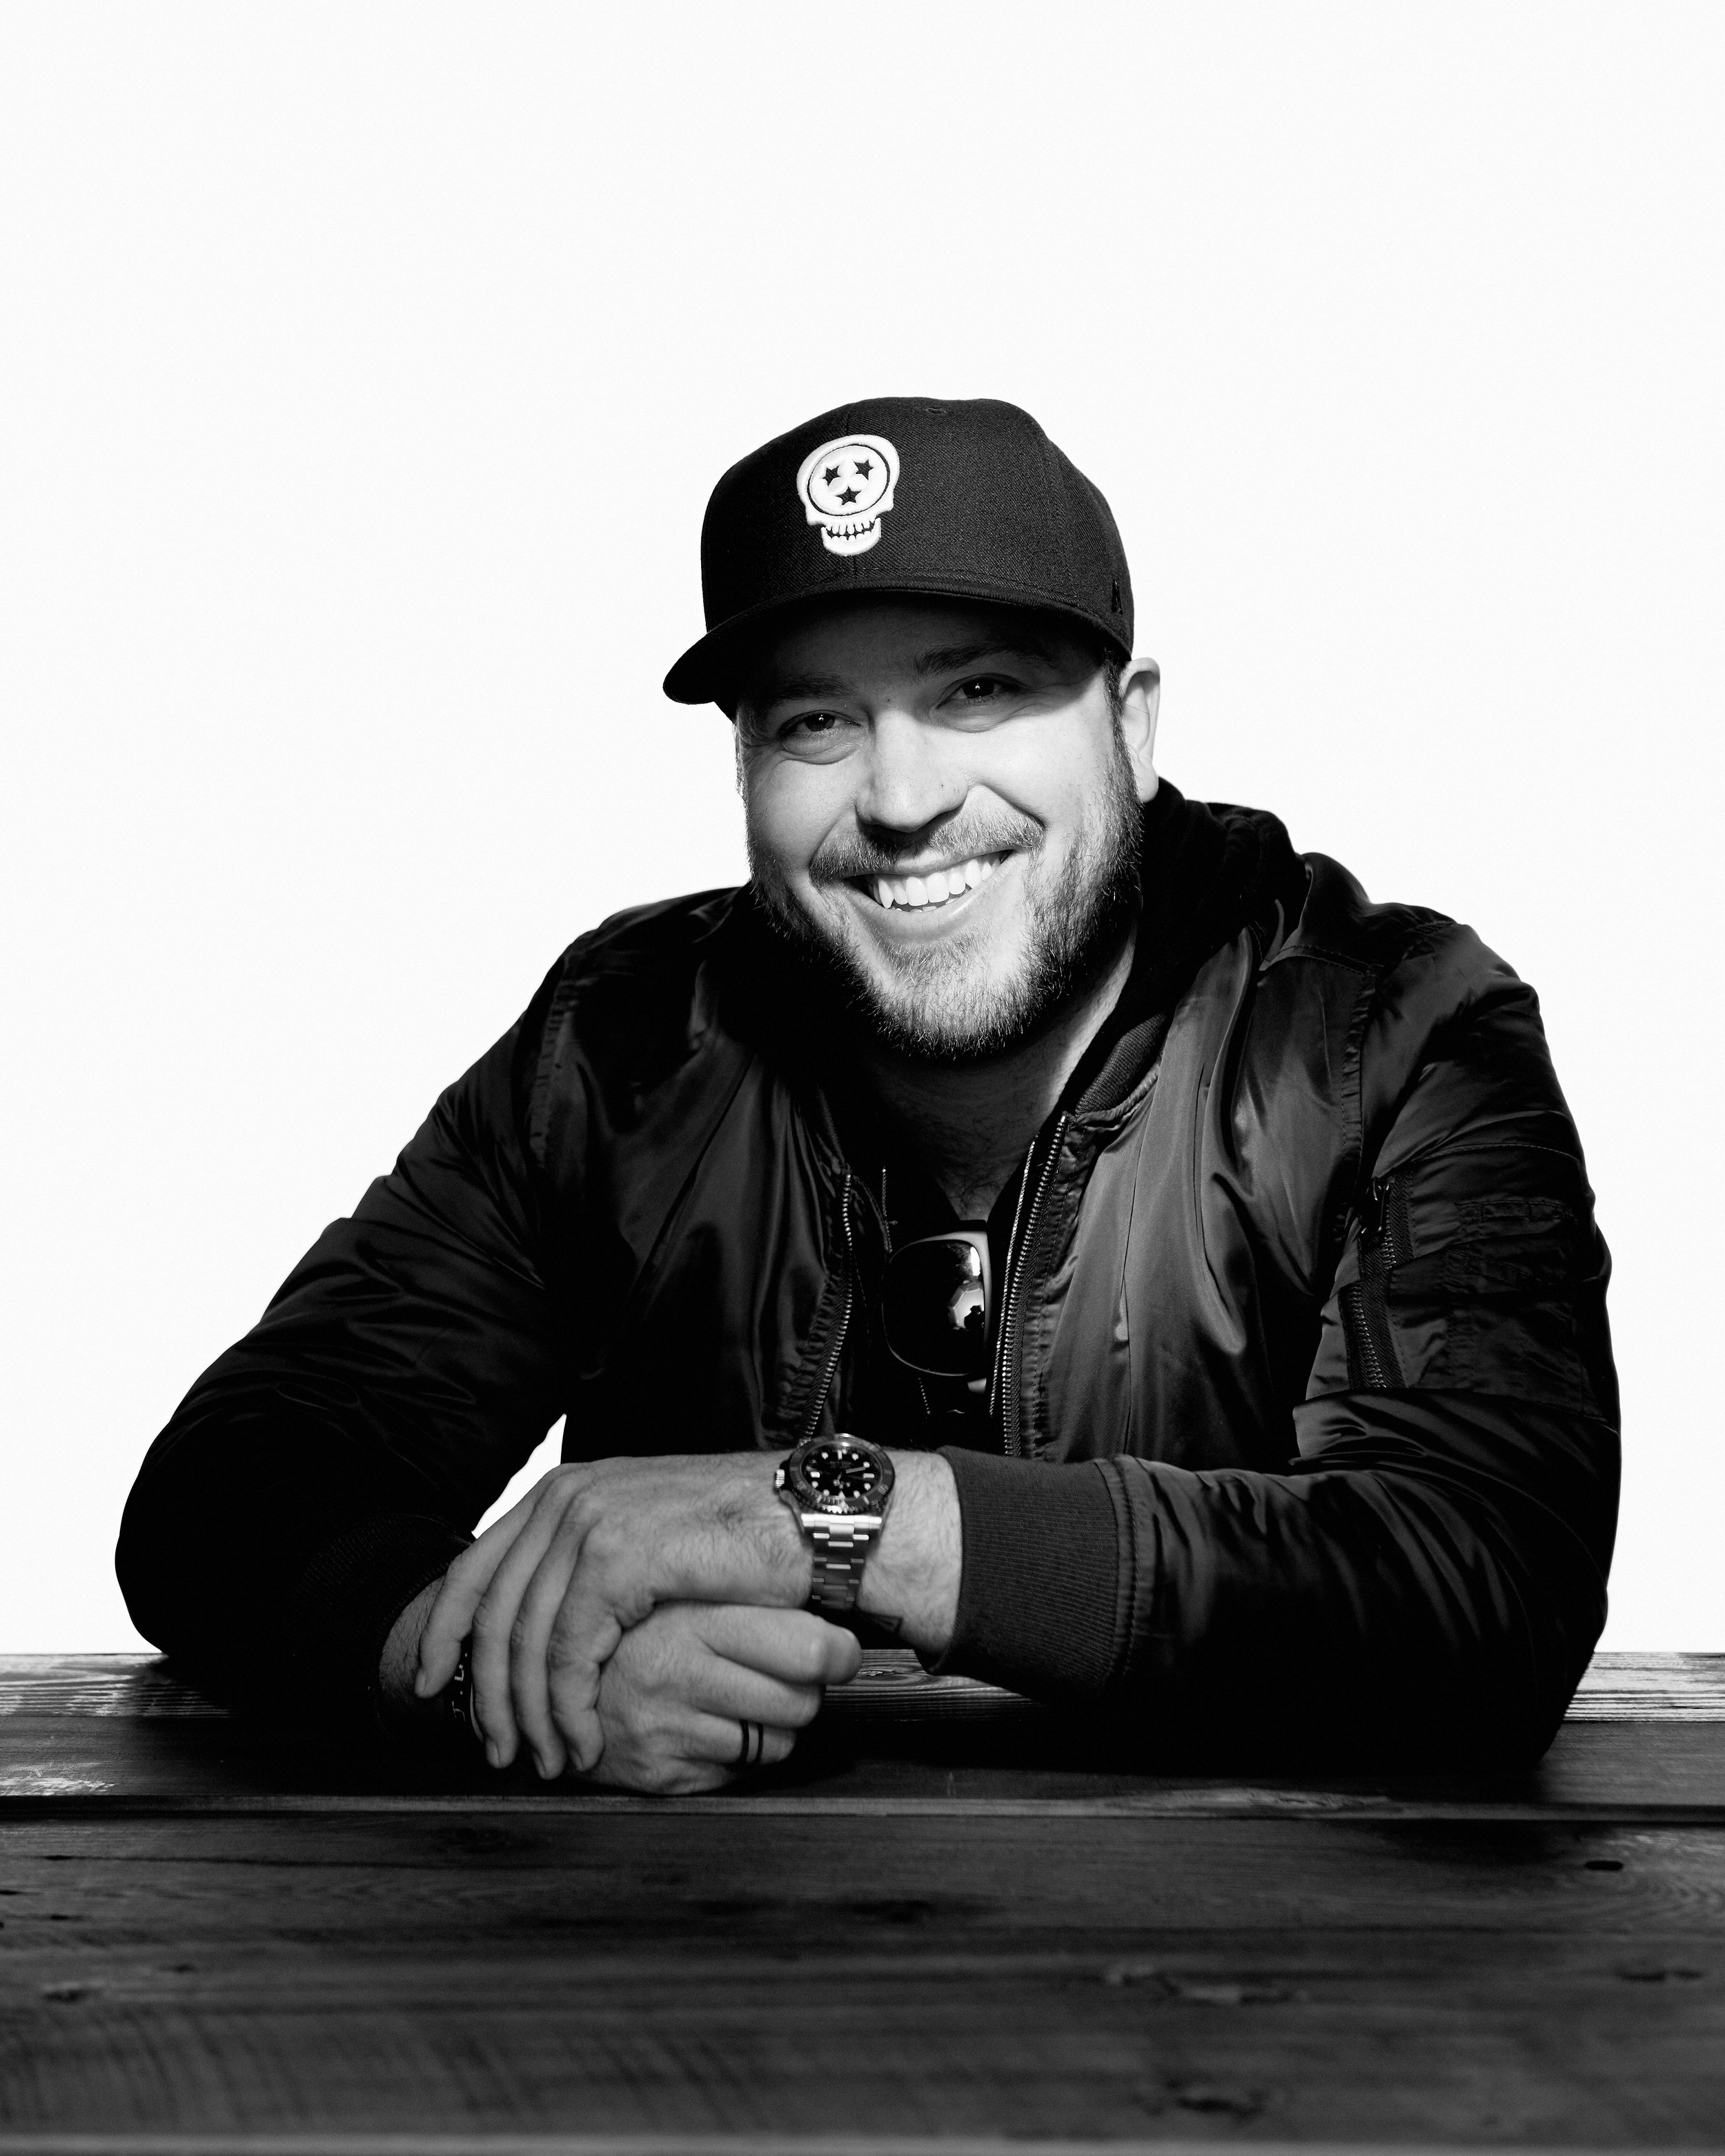 MITCHELL TENPENNY'S DREAM BEER PONG PARTNER IS ONE OF THE BIGGEST NAMES IN MUSIC